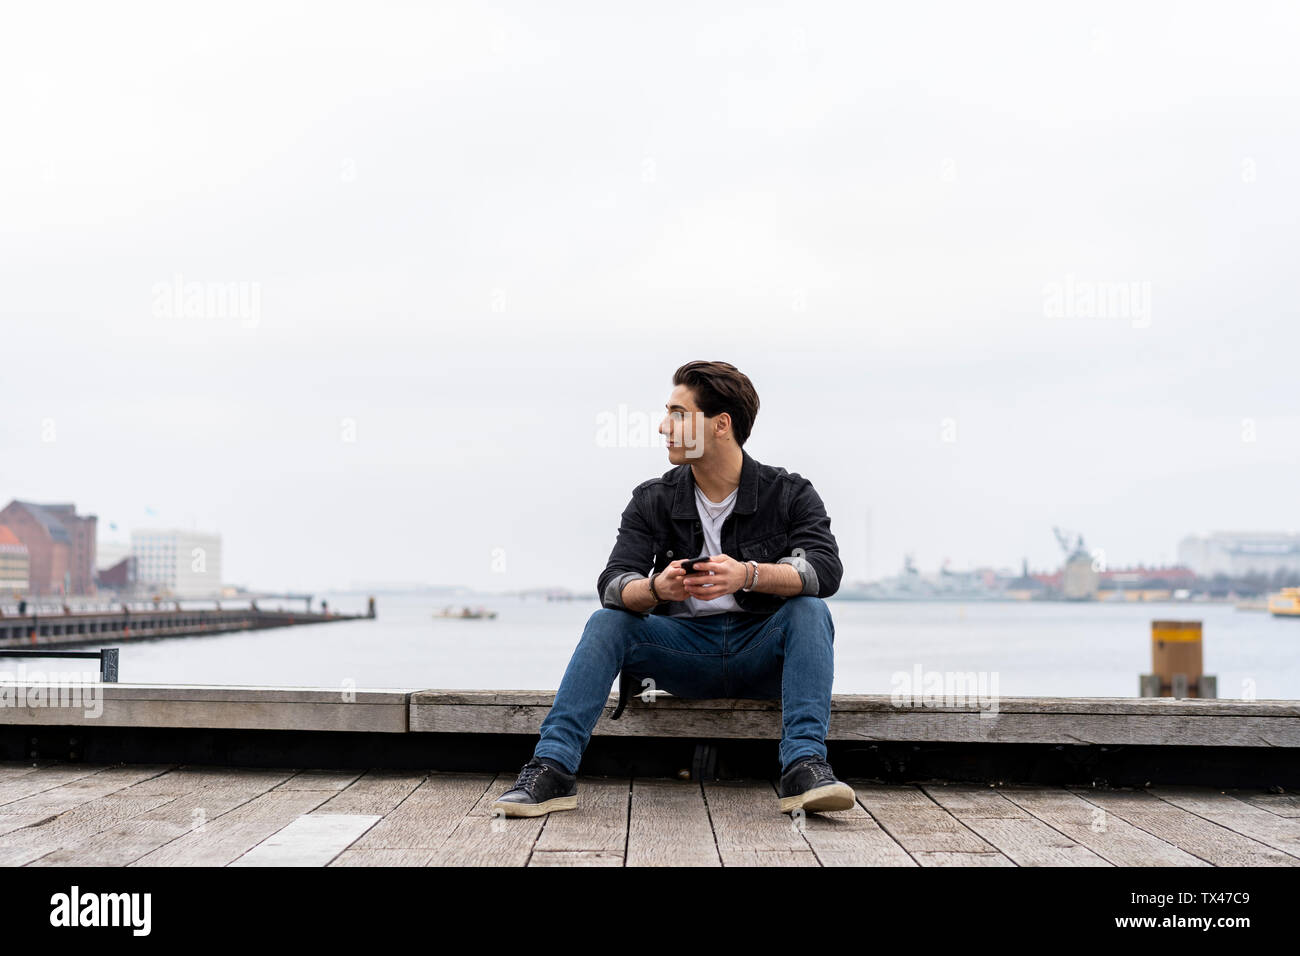 Denmark, Copenhagen, young man sitting at the waterfront with cell phone - Stock Image